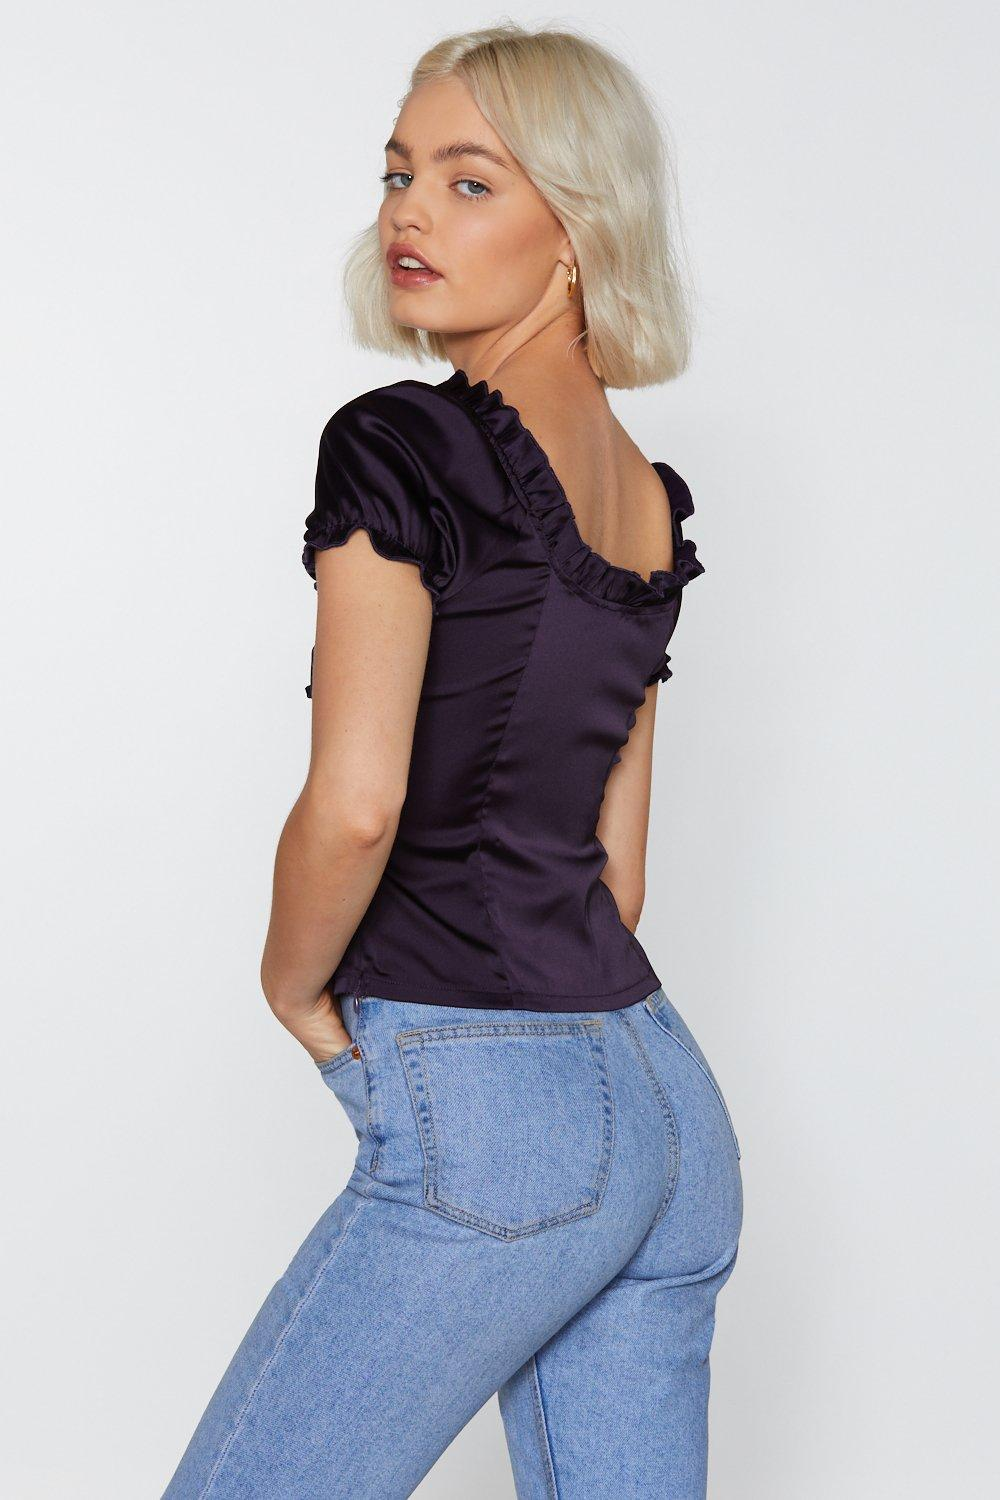 Find It Satin Your Heart Lace-Up Top  574969b87